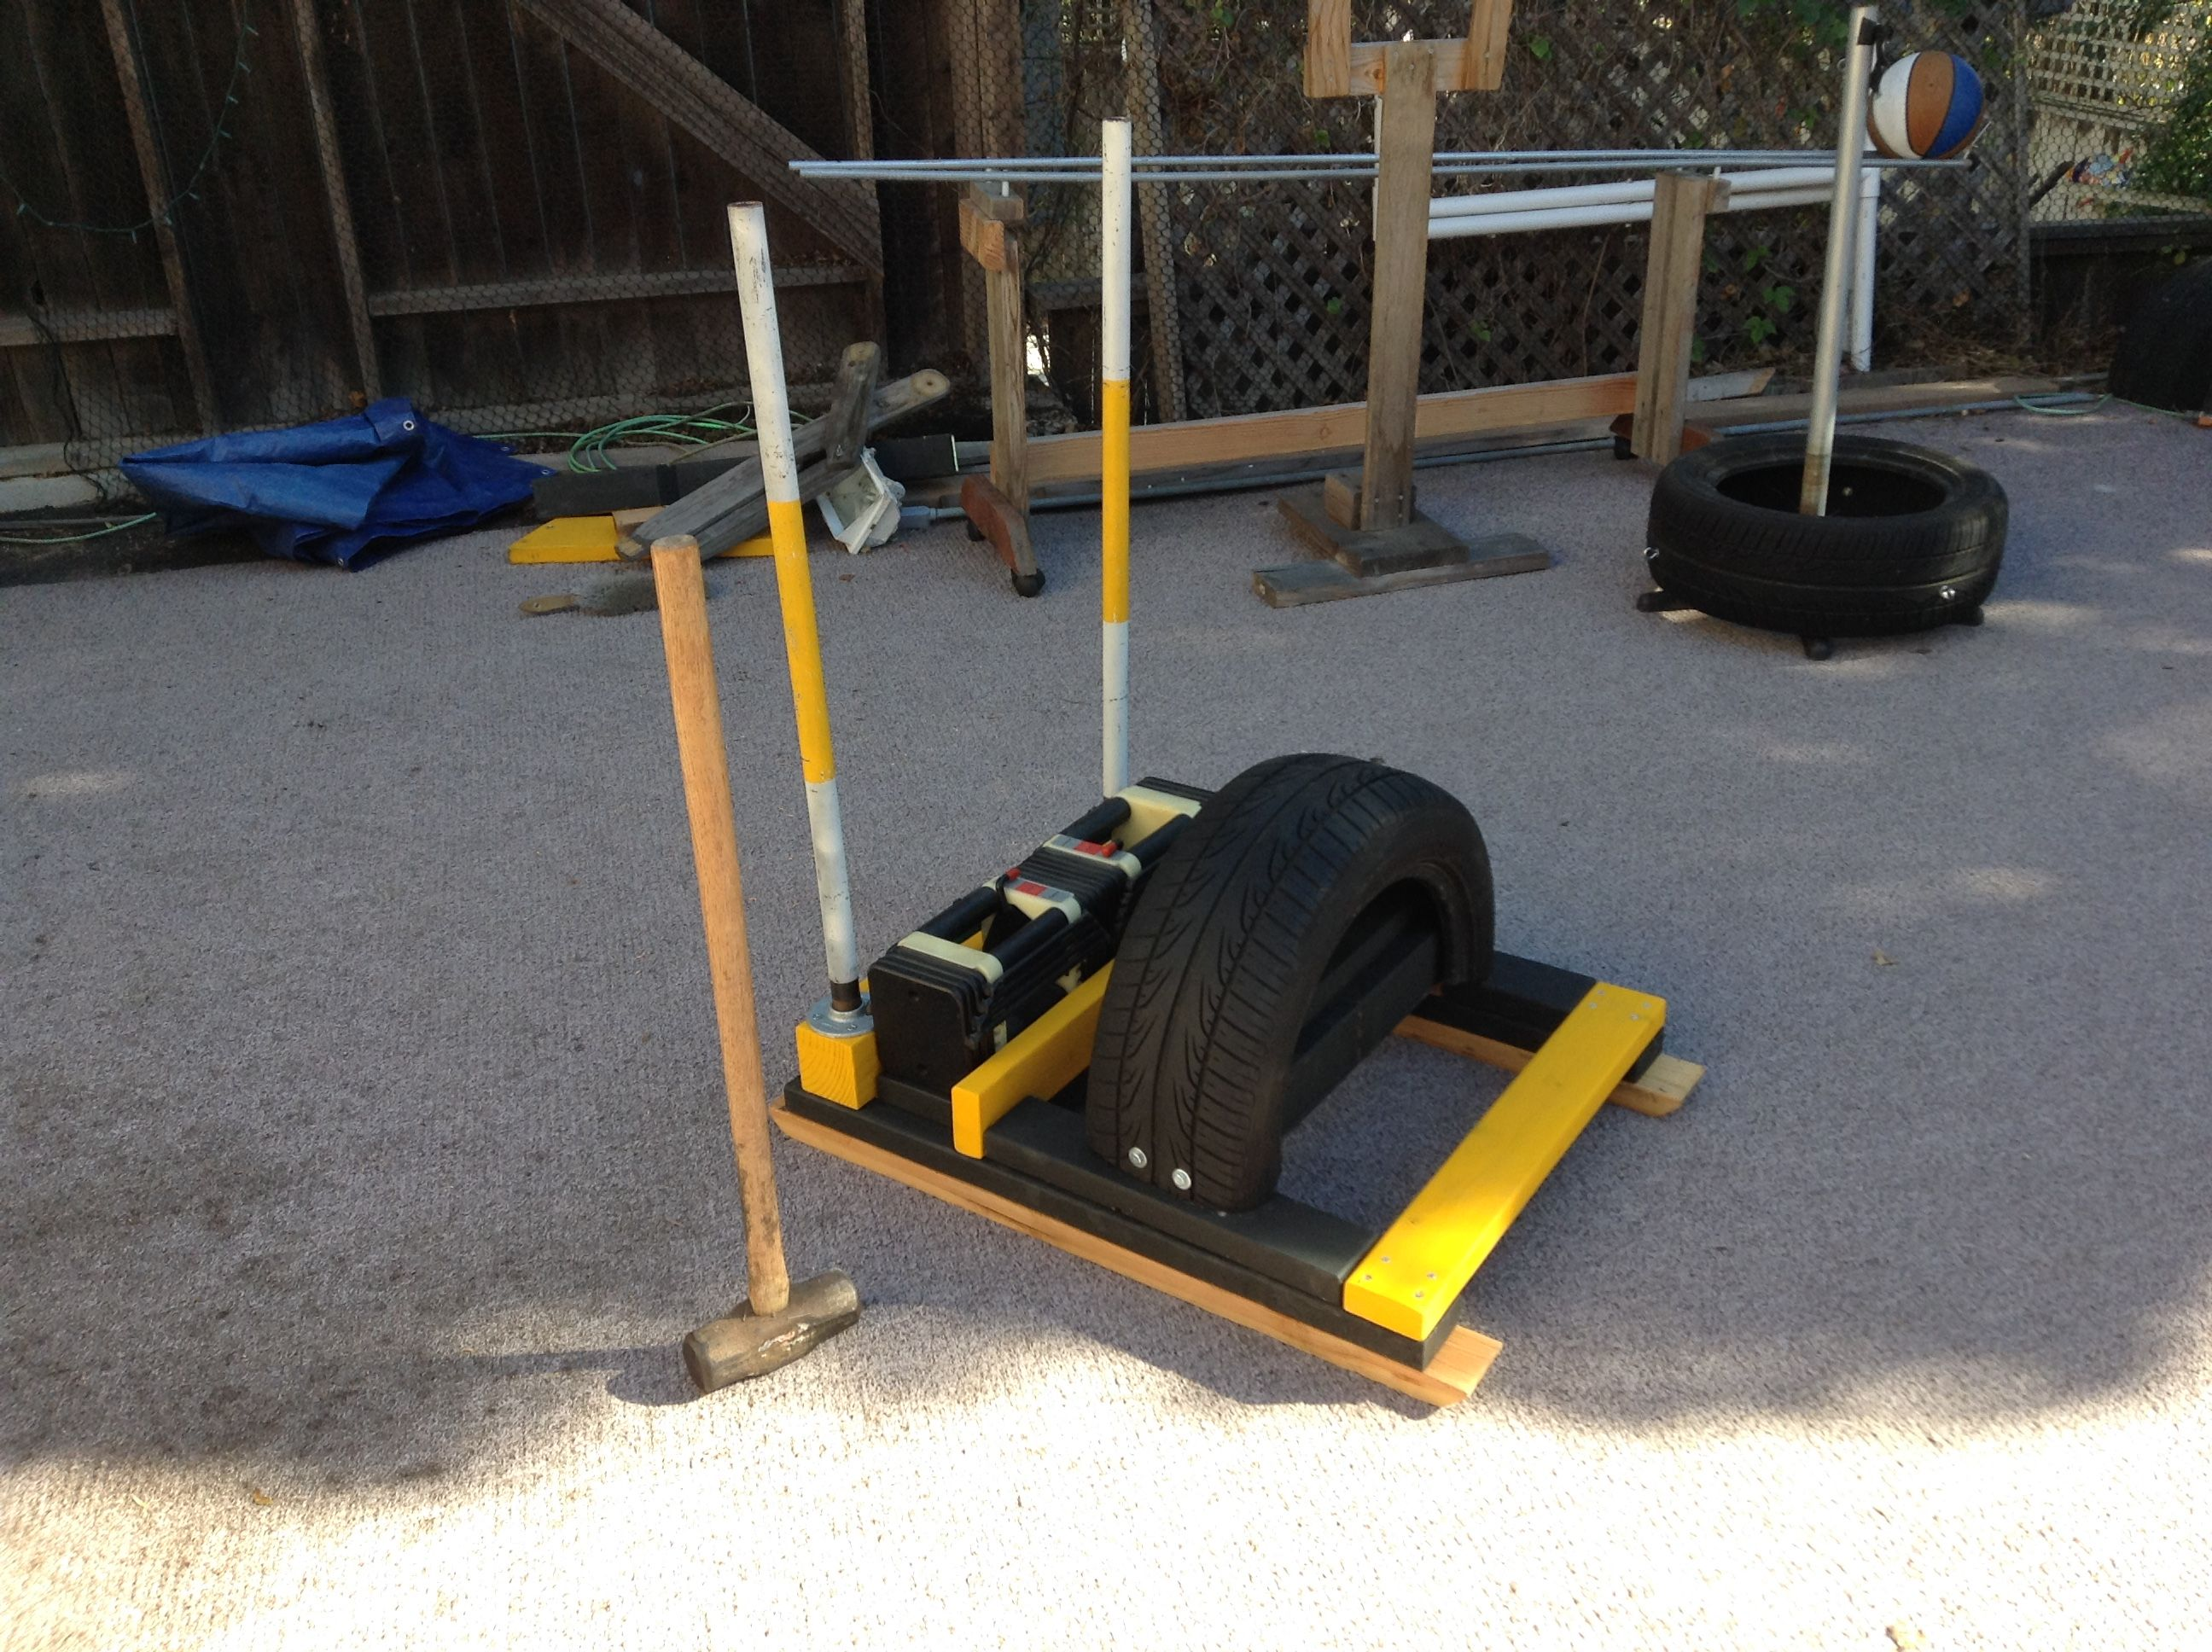 Diy prowler sled with a detachable sledgehammer target and